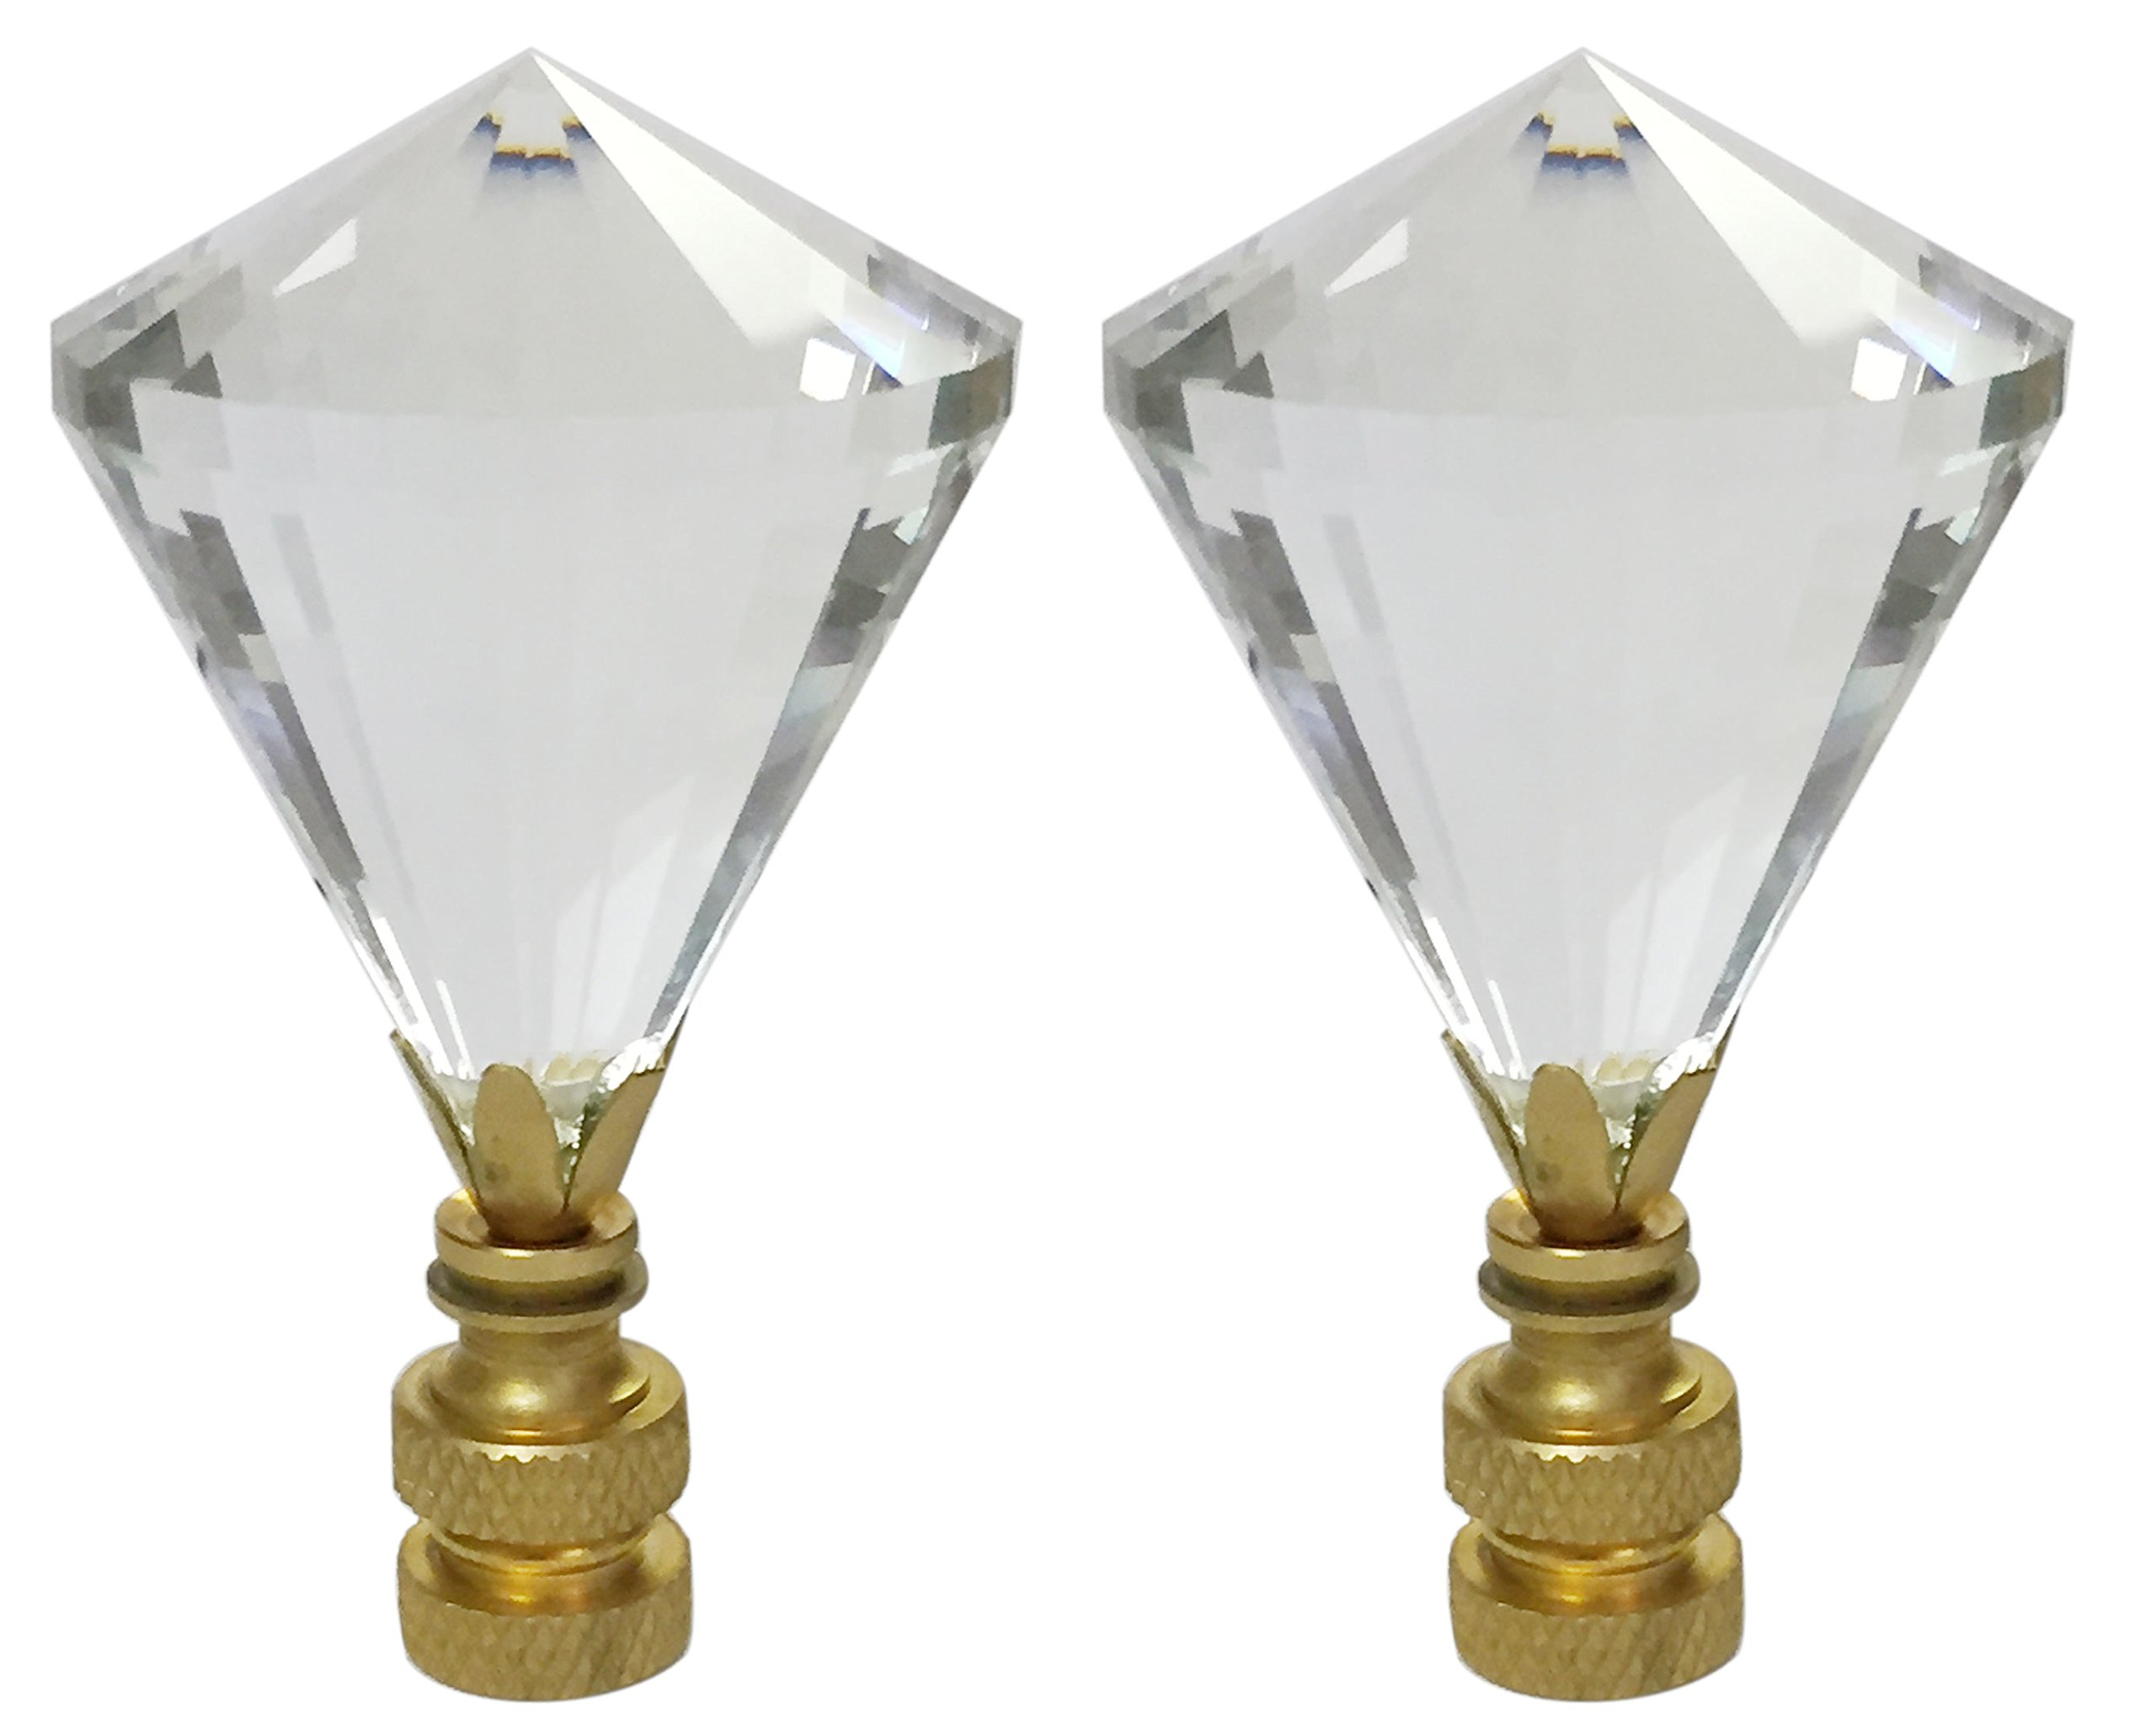 Extra Large Diamond Gem Cut Clear K9 Crystal Lamp Finial for Lamp Shade with Polished Brass Base Set of 2 by Aromzen